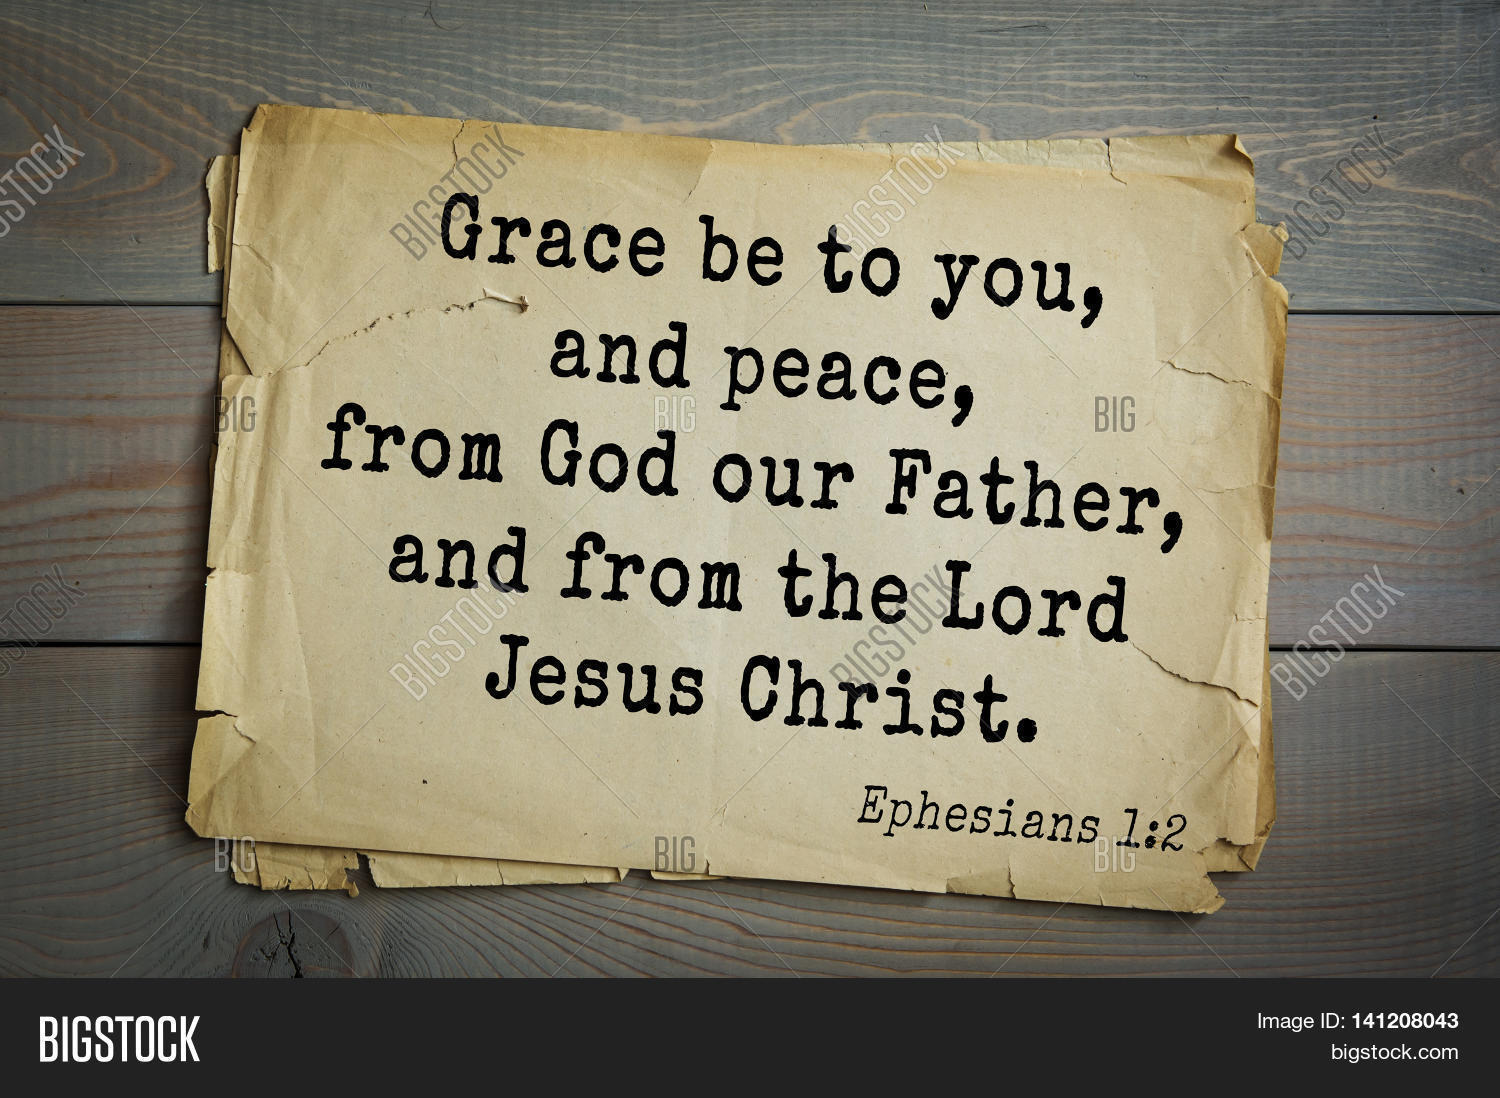 Bible Quotes About Peace Top 500 Bible Versesgrace Be You Image & Photo  Bigstock